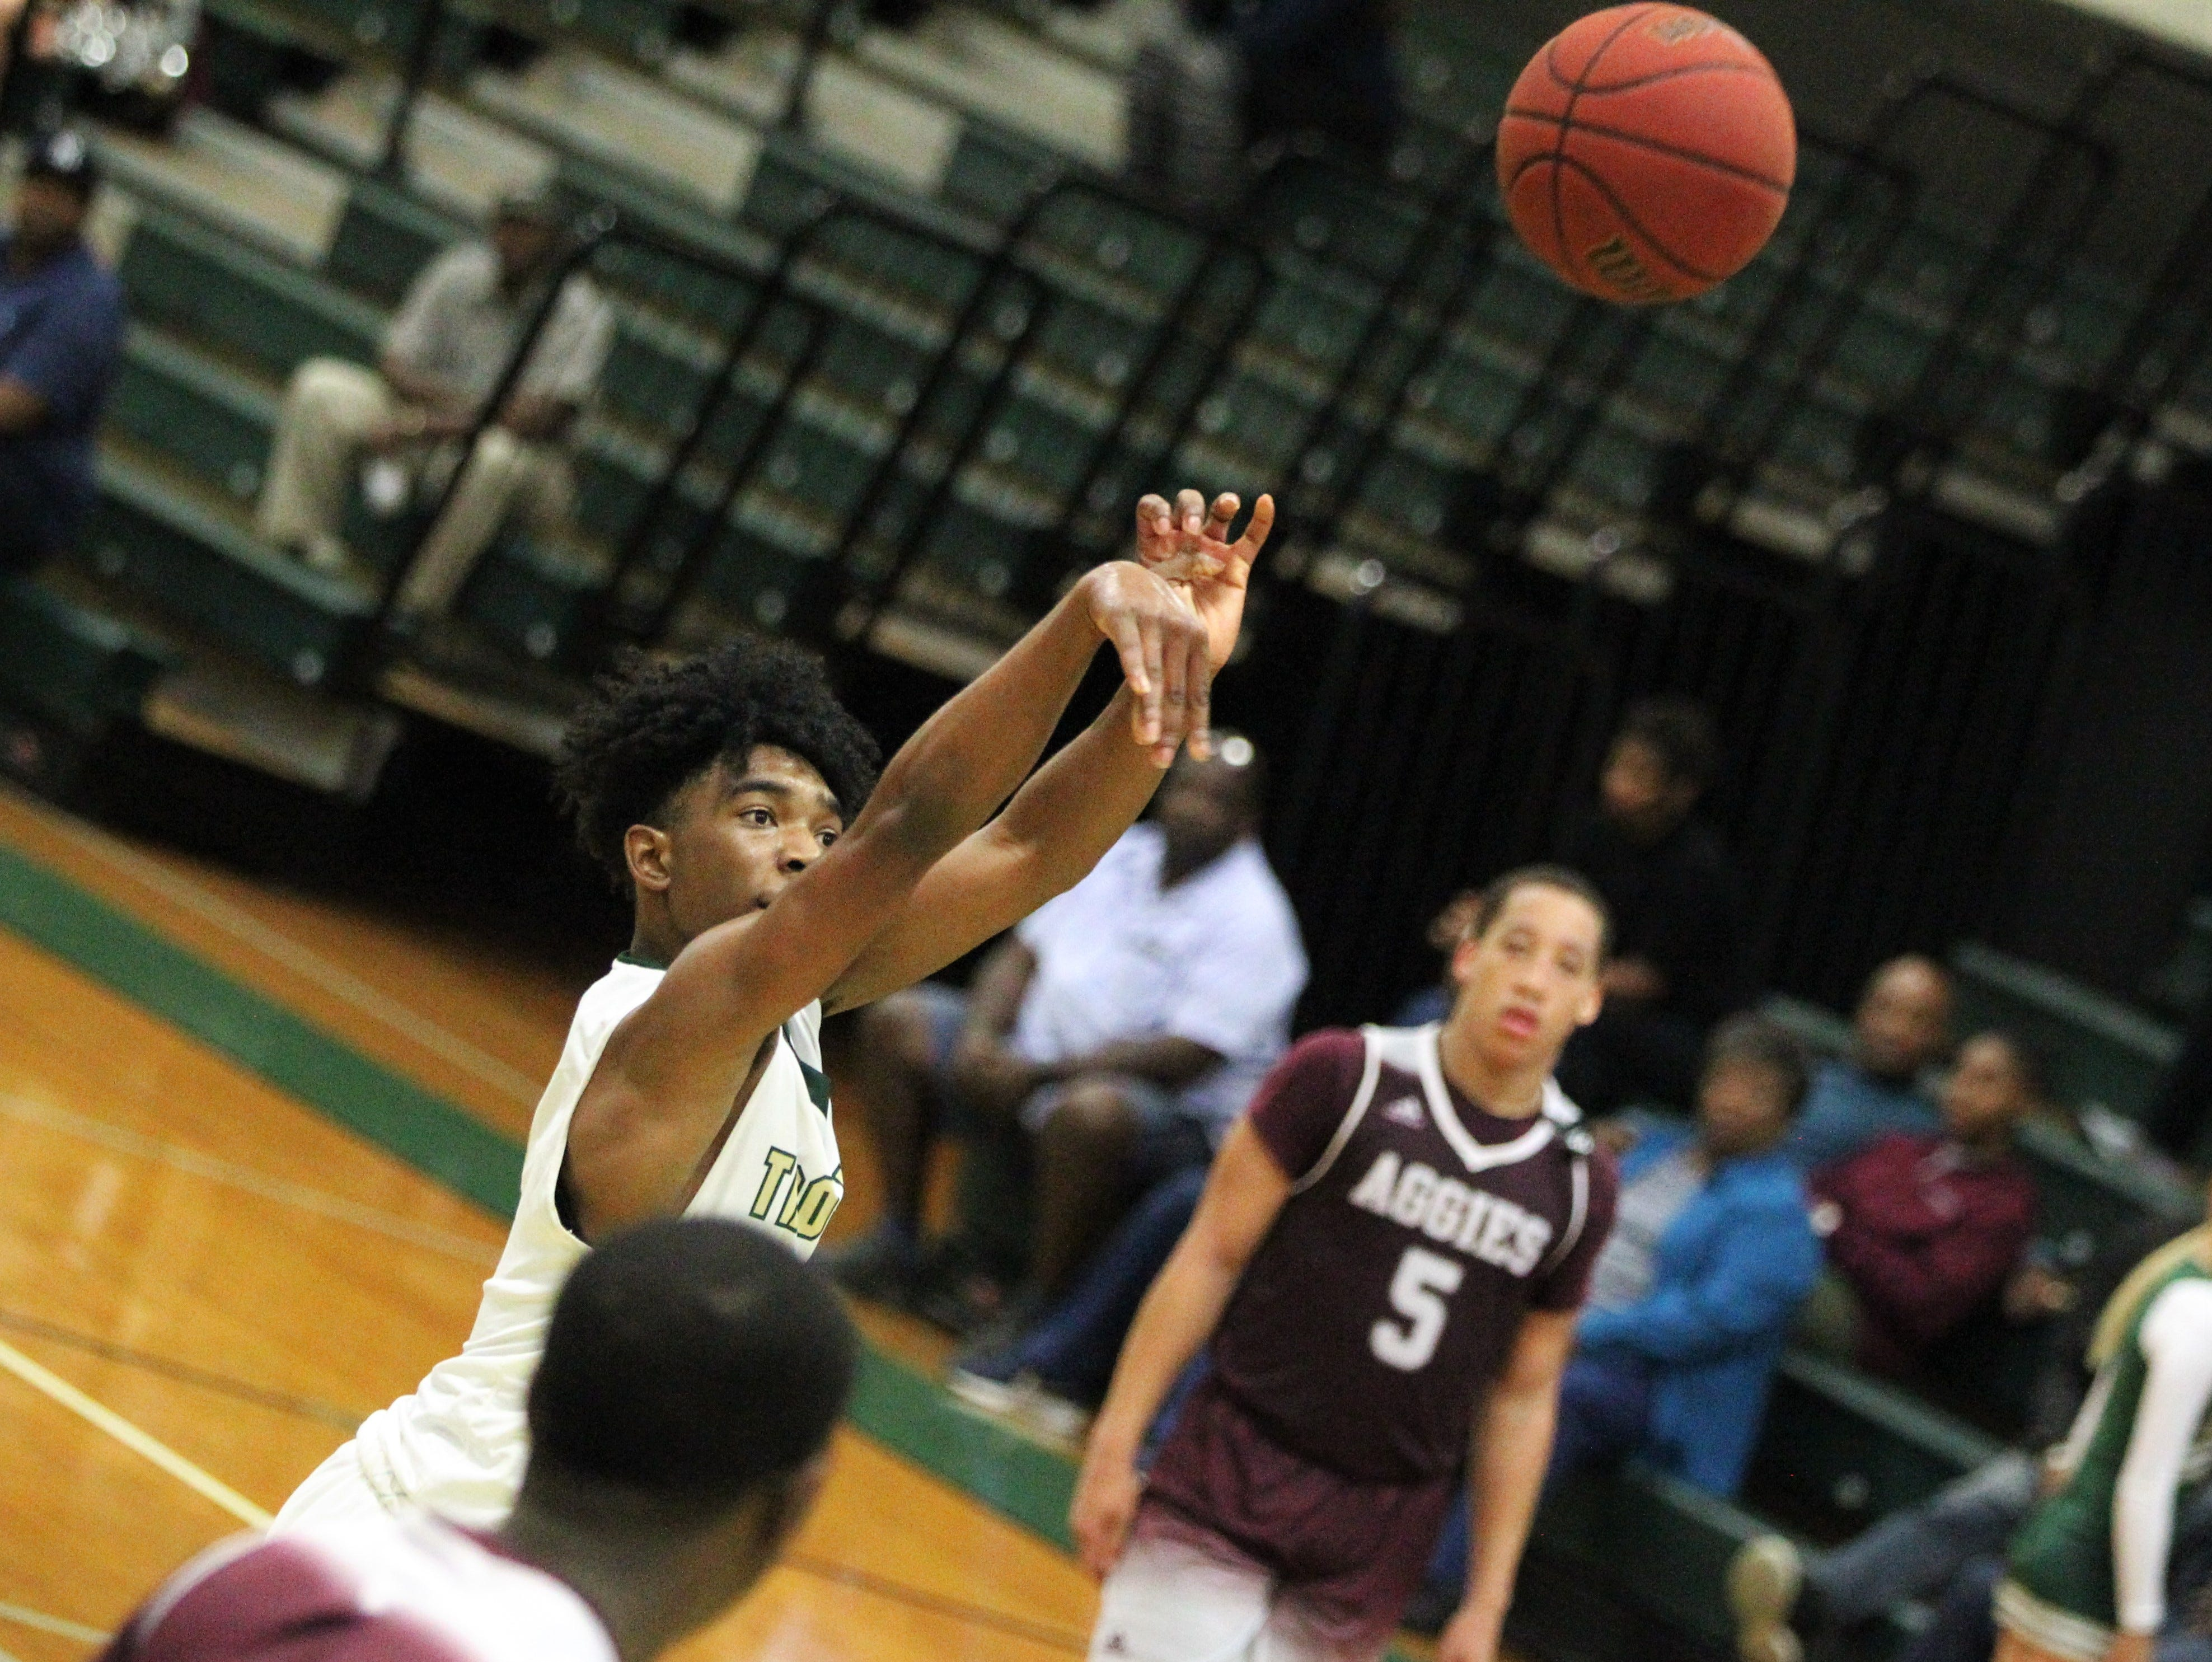 Lincoln's Zae Wiggins shoots a free throw as the Trojans beat Tate 74-41 in a Region 1-8A semifinal on Feb. 26, 2019.